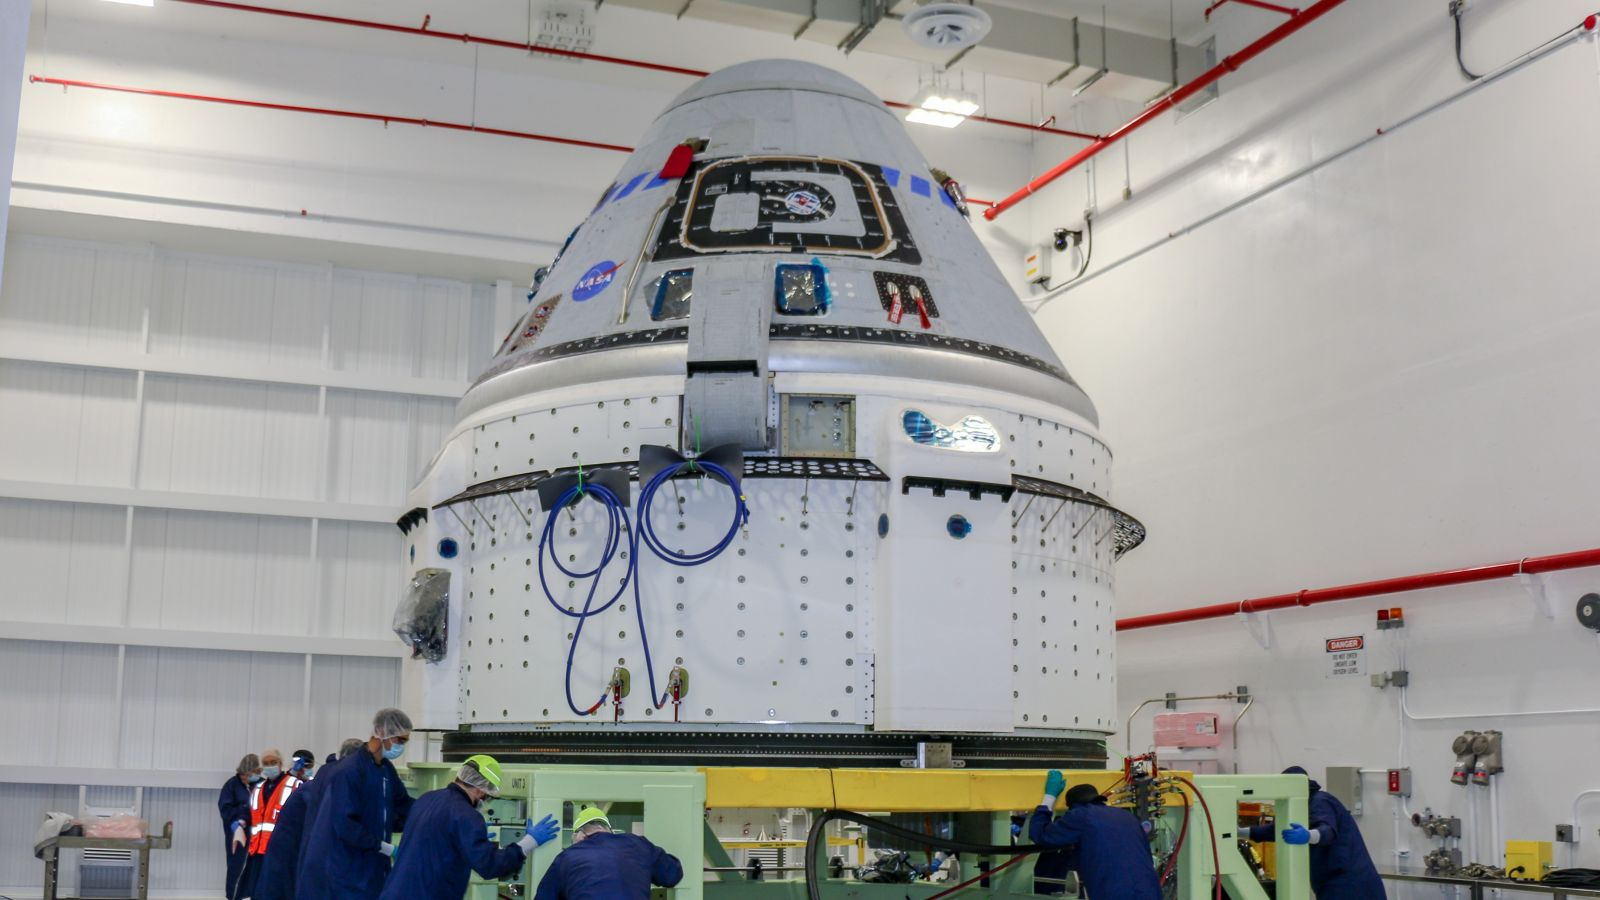 Boeing's CST-100 Starliner spacecraft that will be used for the OFT-2 Starliner mission is seen June 2, 2021, in the Commercial Crew and Cargo Processing Facility at NASA's Kennedy Space Center in Florida. Credit: Boeing